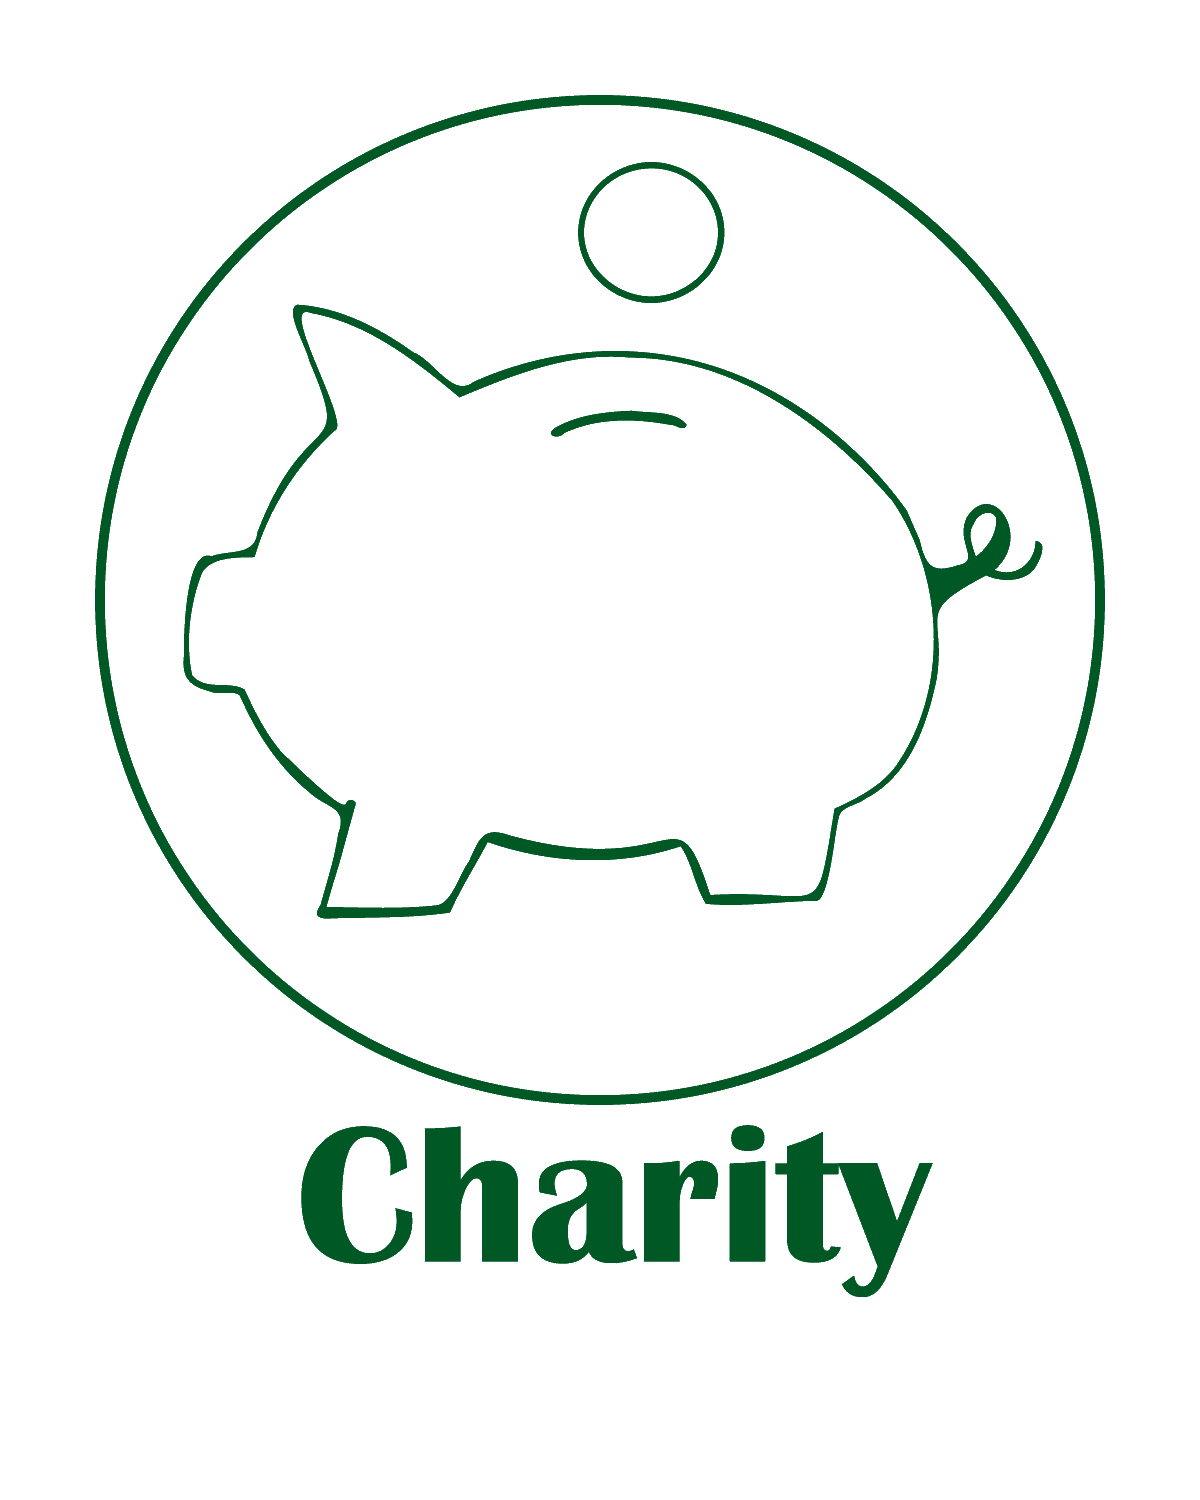 The Green Bundle Charity Logo